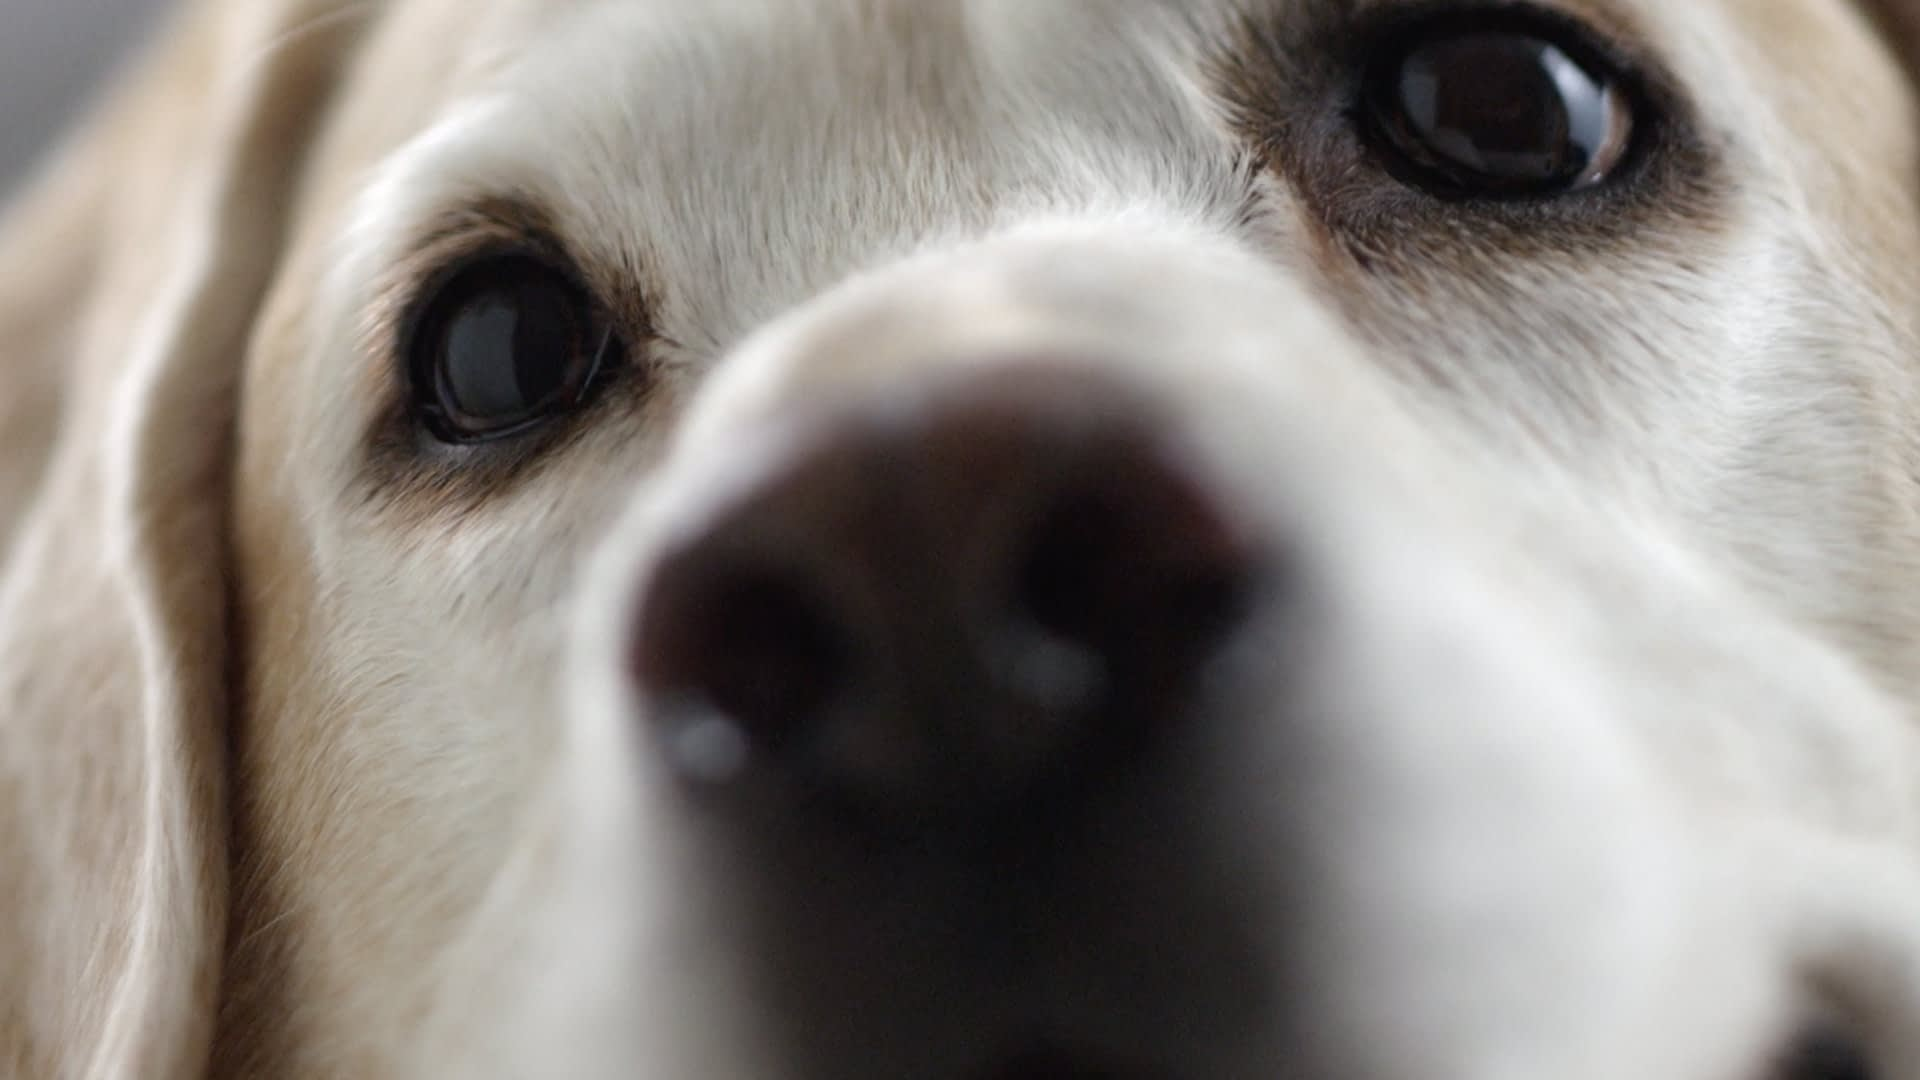 A very close up shot of a golden reteriever's snout and eyes.